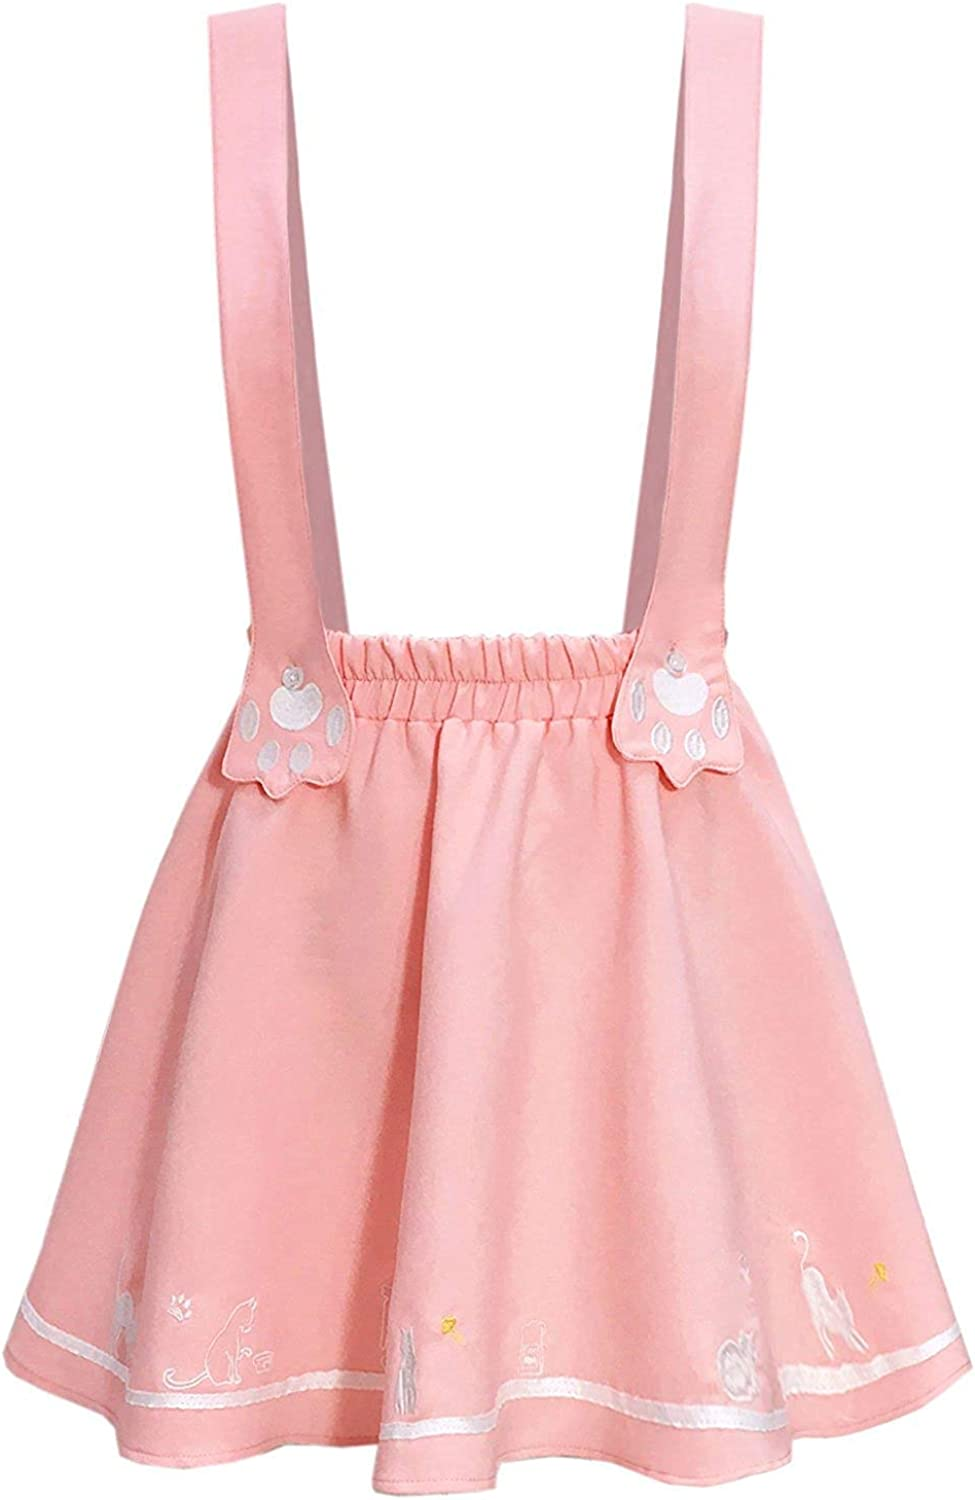 FUTURINO Womens Sweet Cat Paw Embroidery Pleated Mini Skirt with 2 Suspender